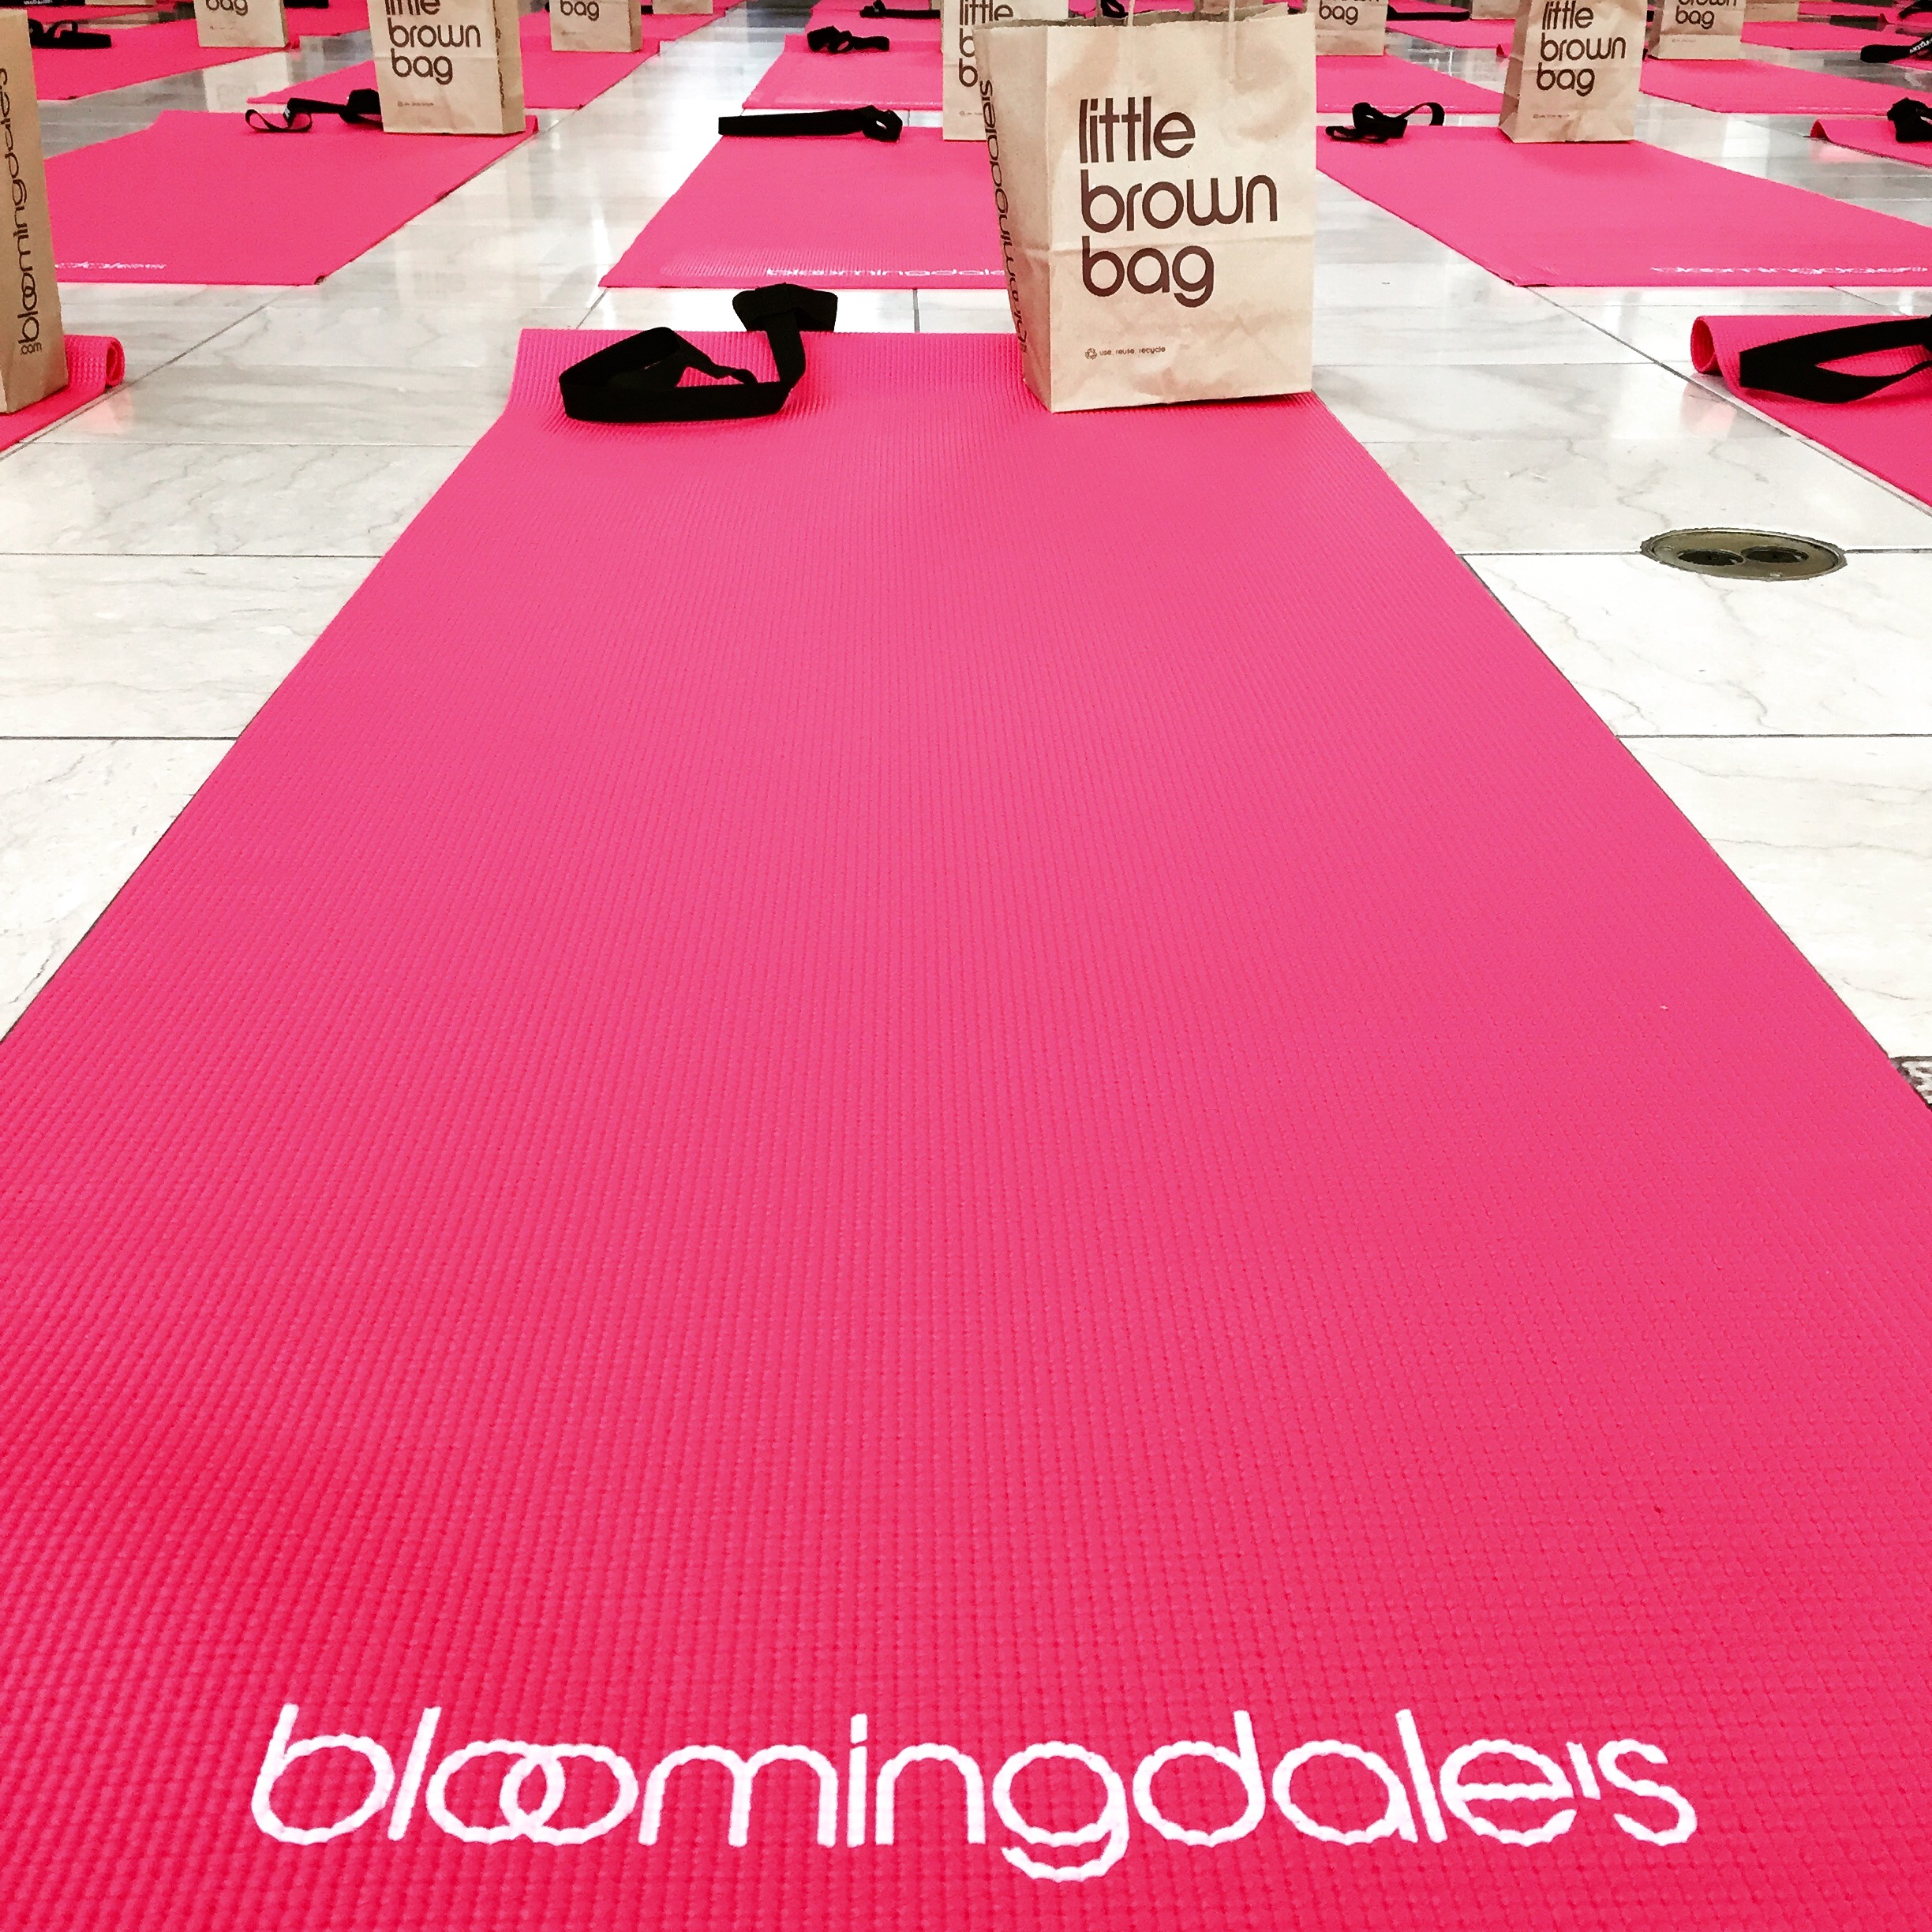 bloomingdales yoga 4